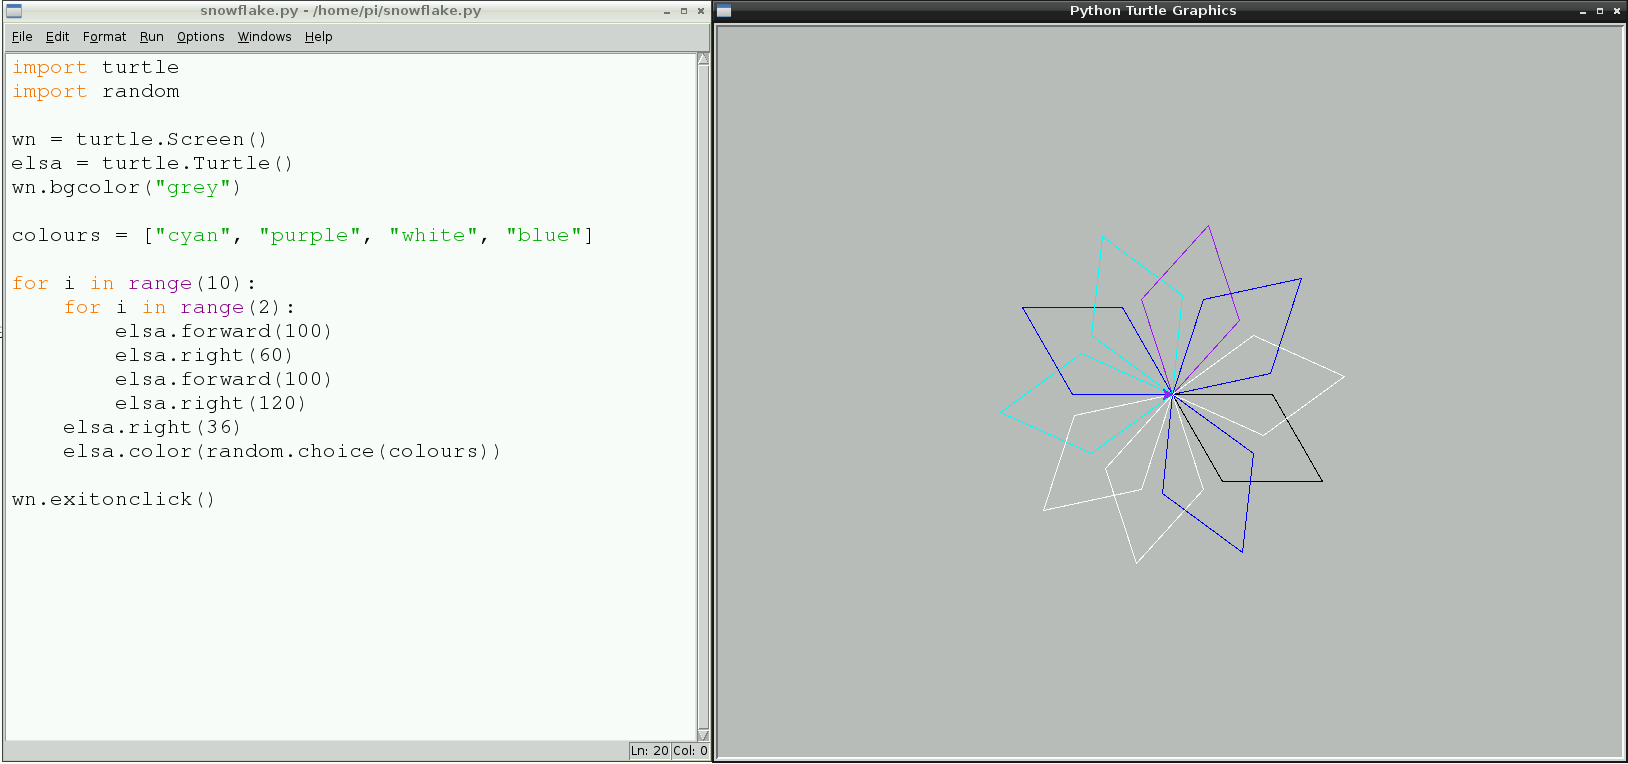 Save And Run Your Code For A Multi Coloured Snowflake